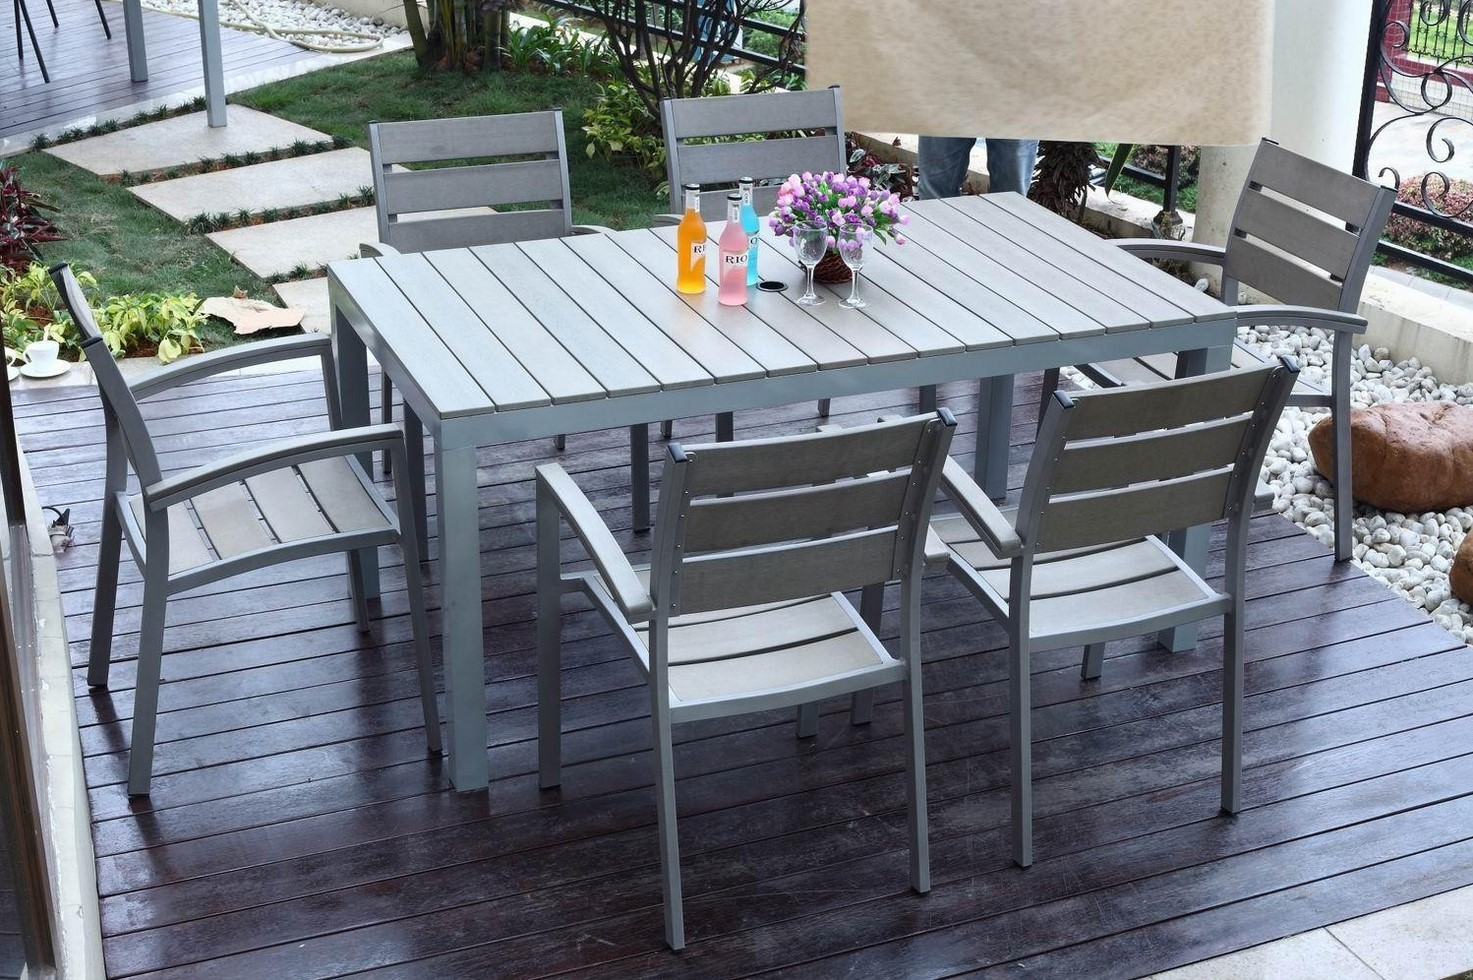 How To Protect Outdoor Wood Furniture From Elements